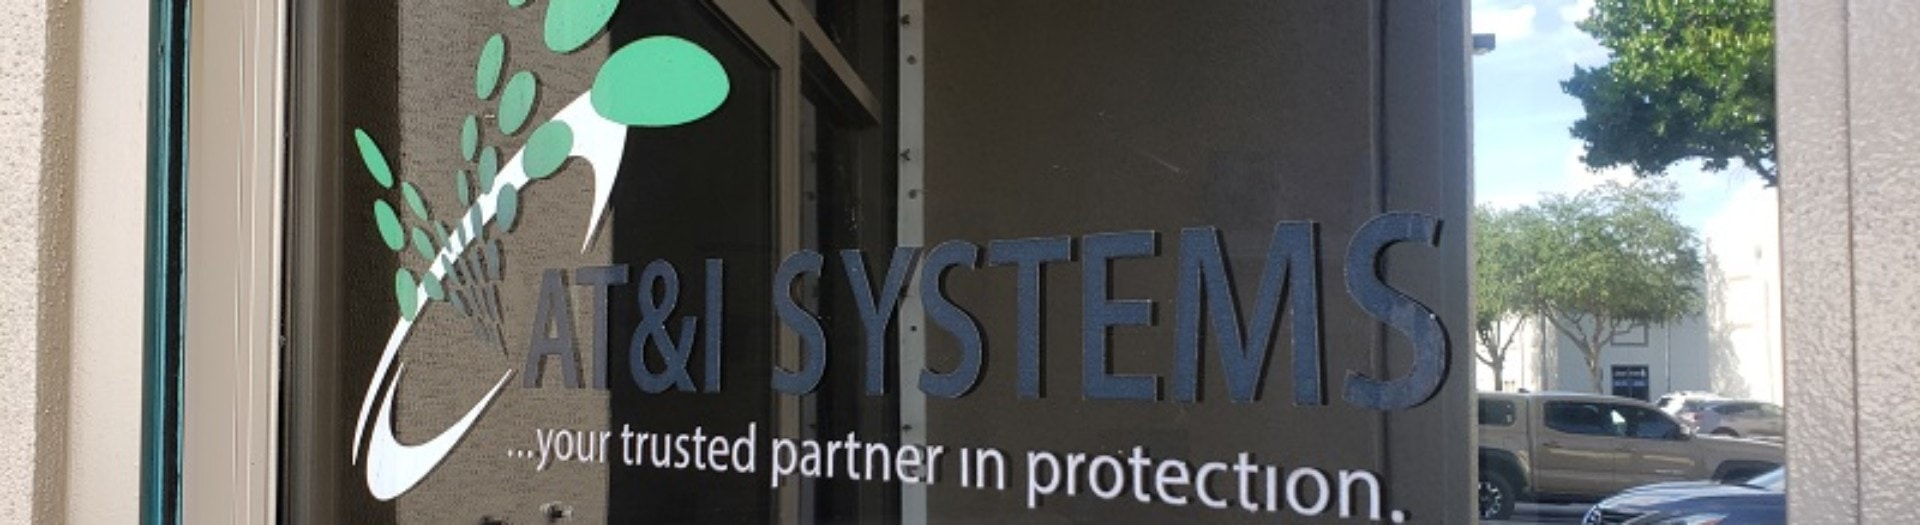 AT&I Systems office door, Your trusted partner in protection.